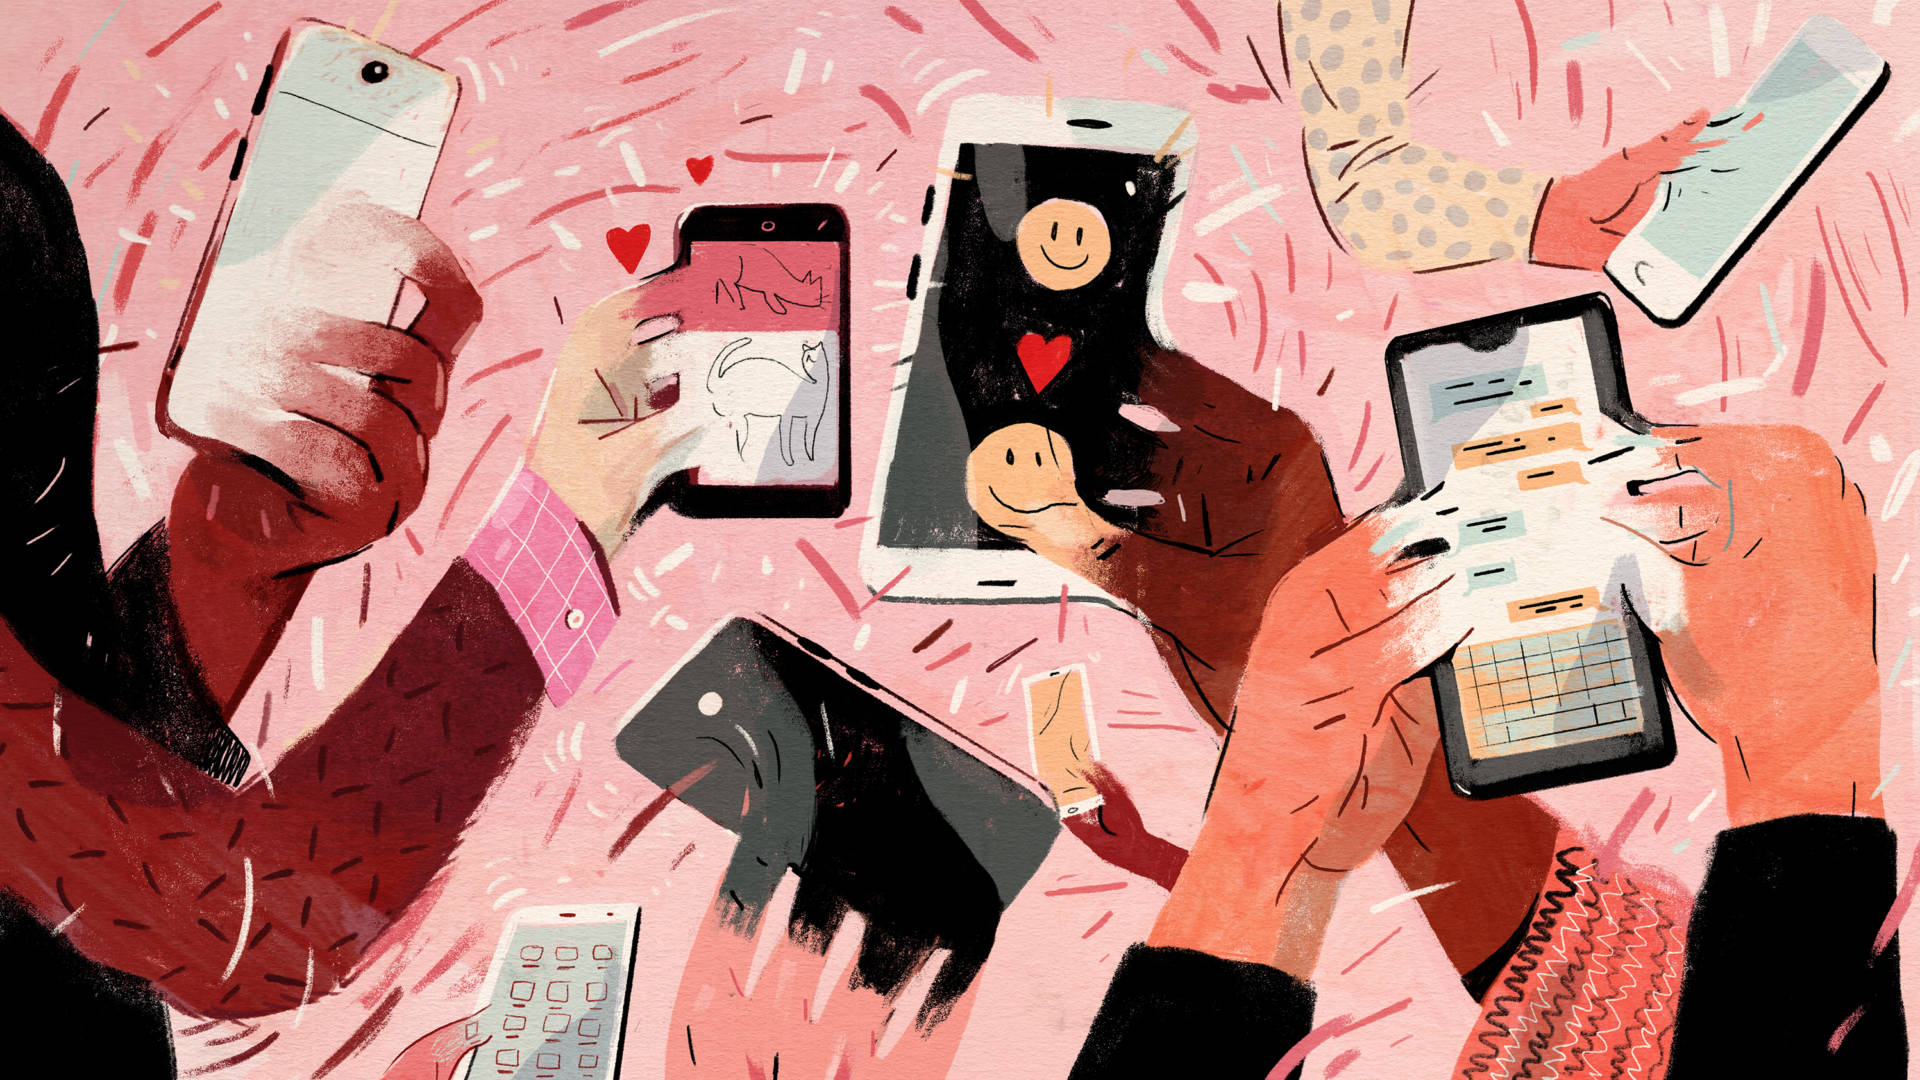 For many people, checking their smartphone can be addicting. Ryan Johnson for NPR